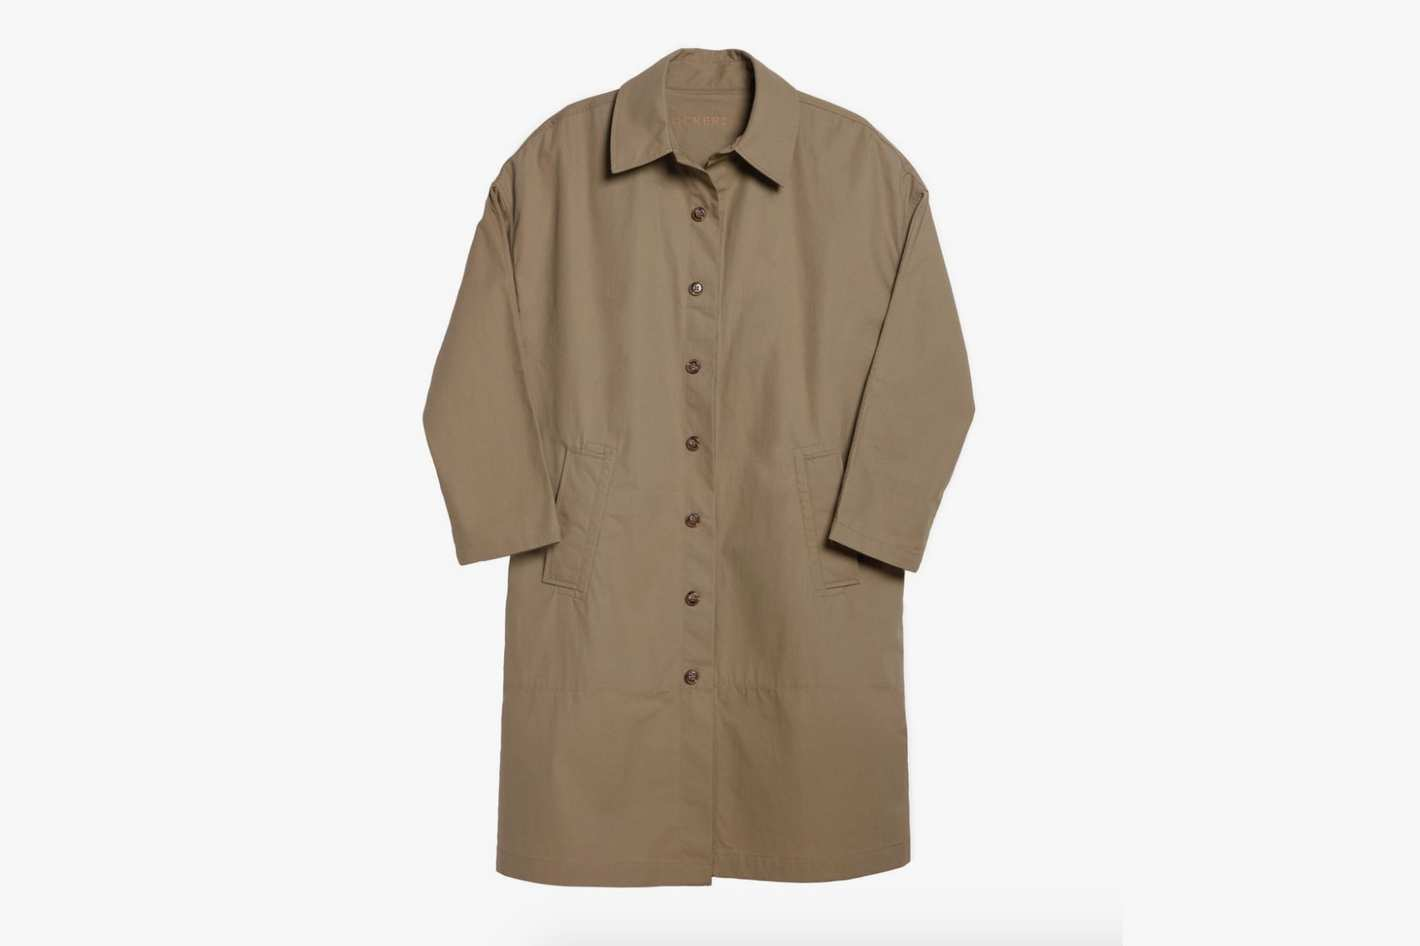 Dockers x Karla Trench